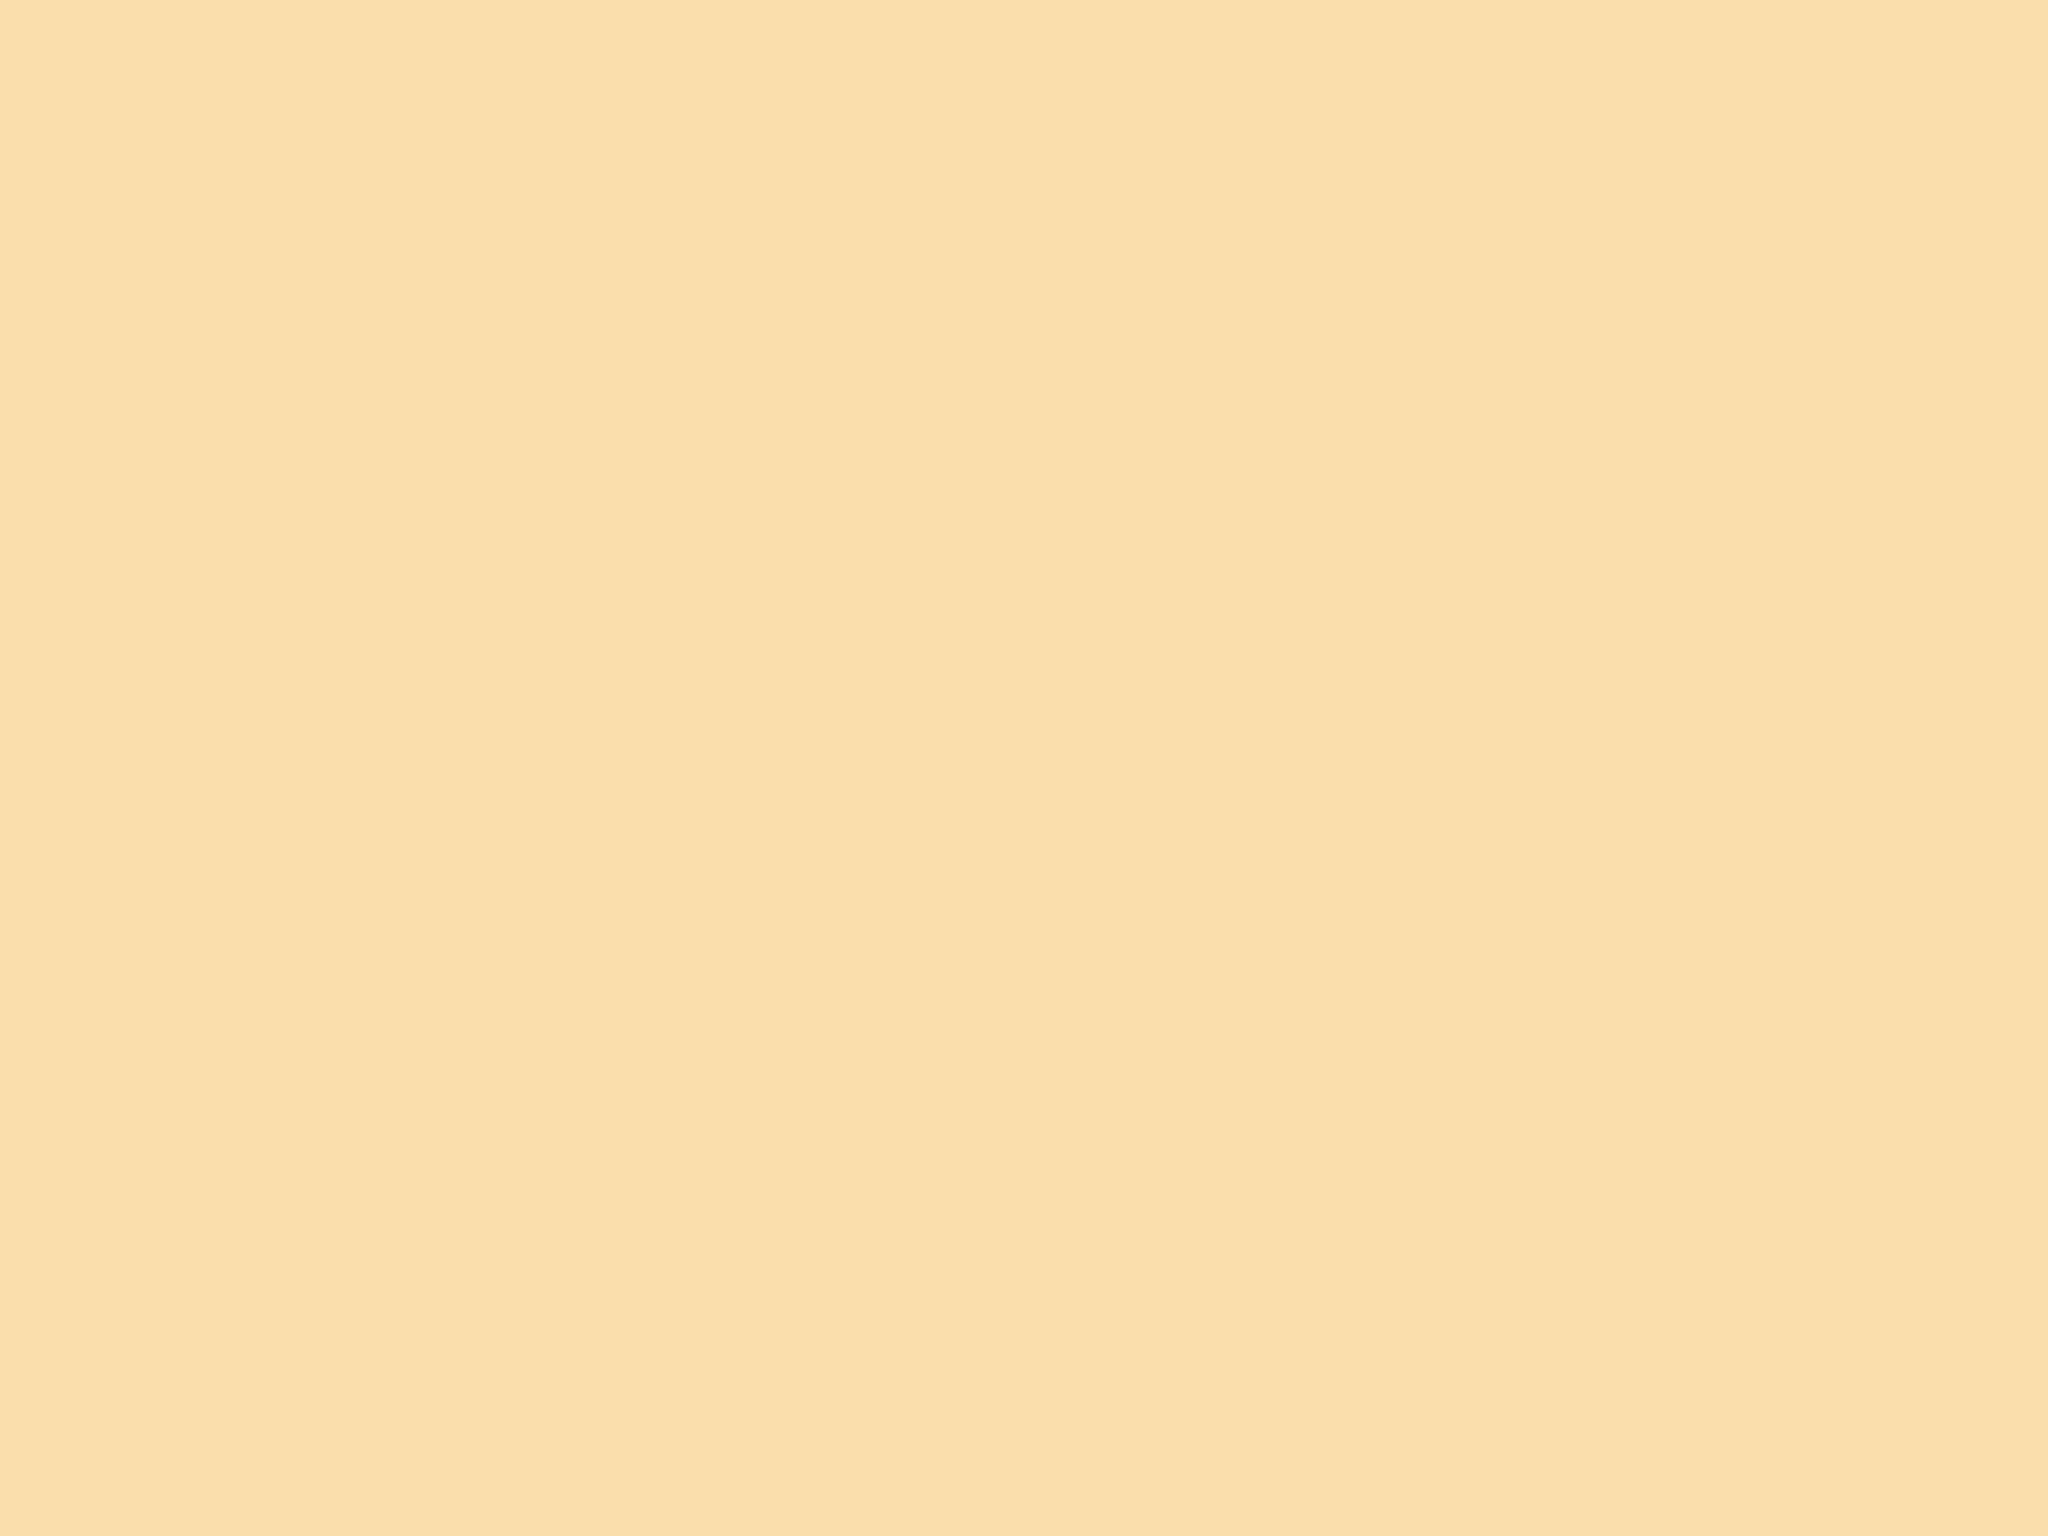 2048x1536 Peach-yellow Solid Color Background